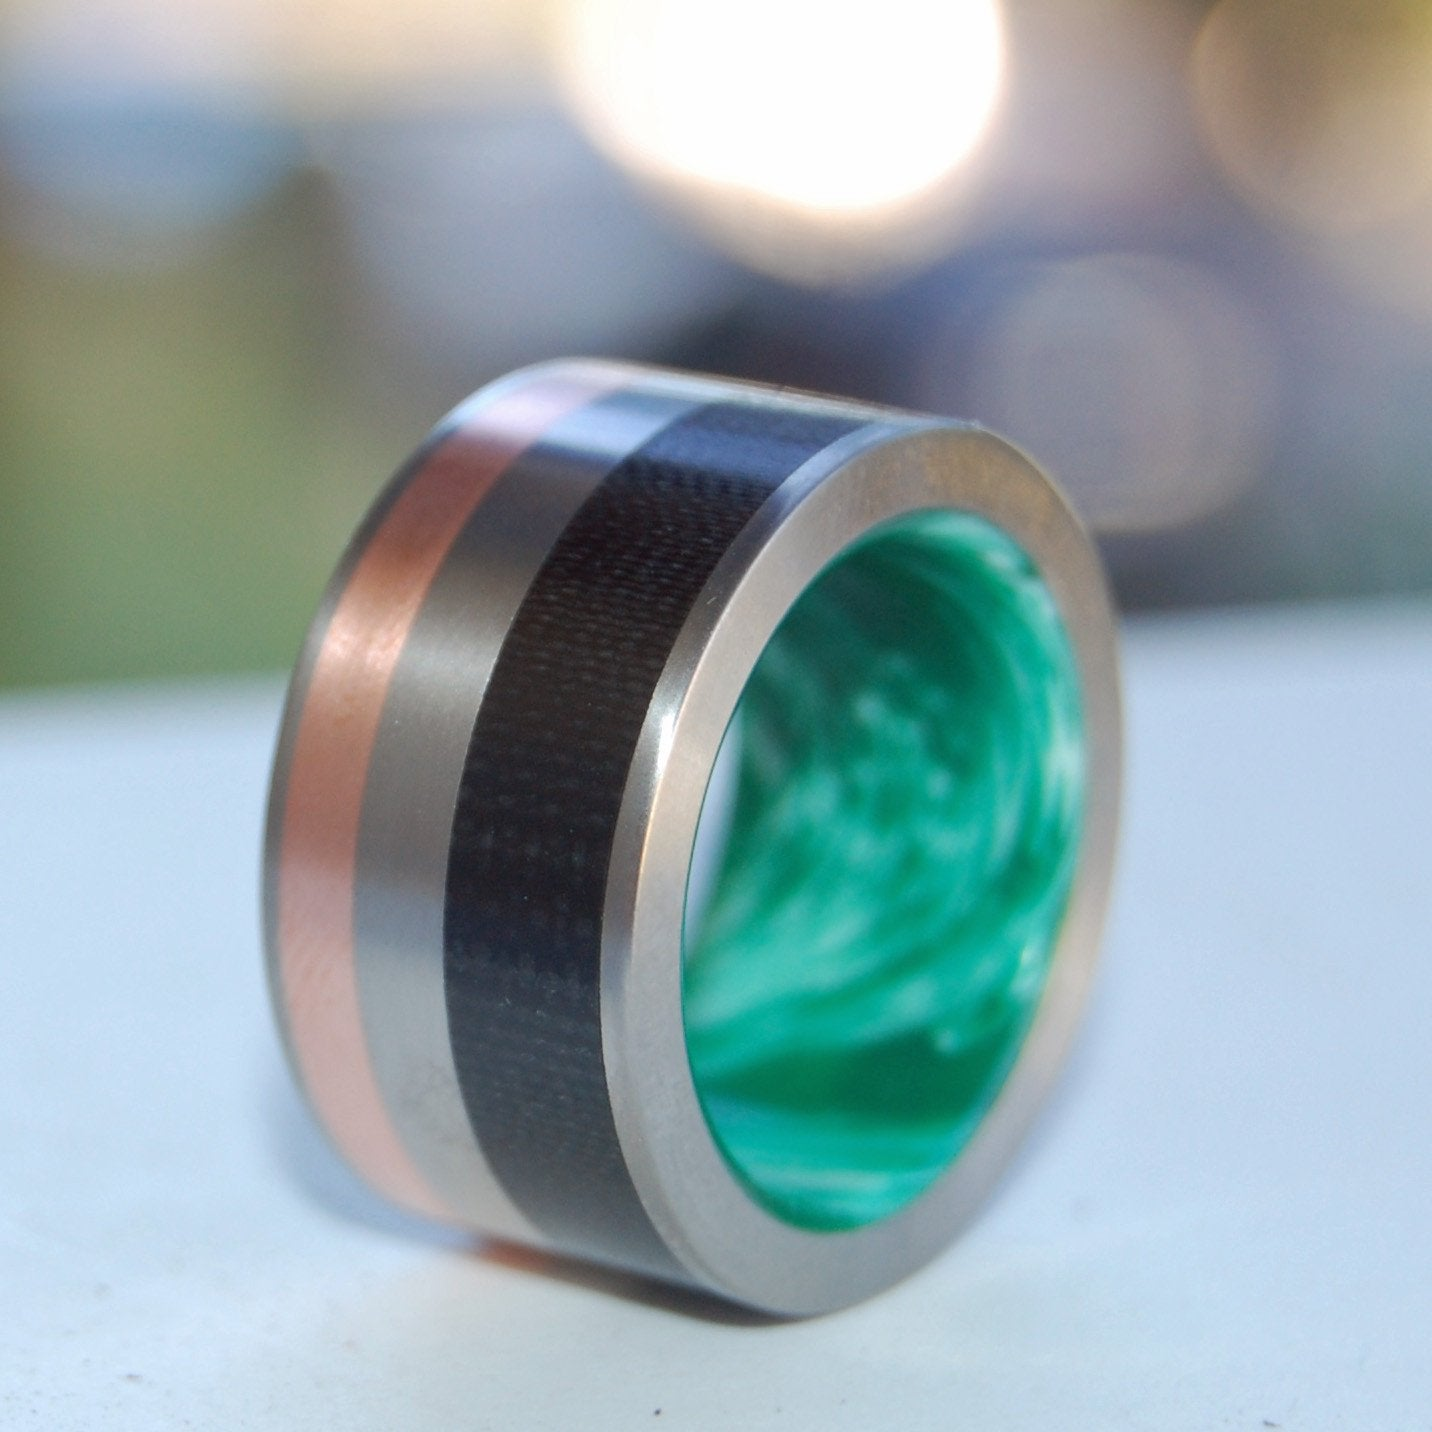 Carbon Fiber + Copper + Green Resin